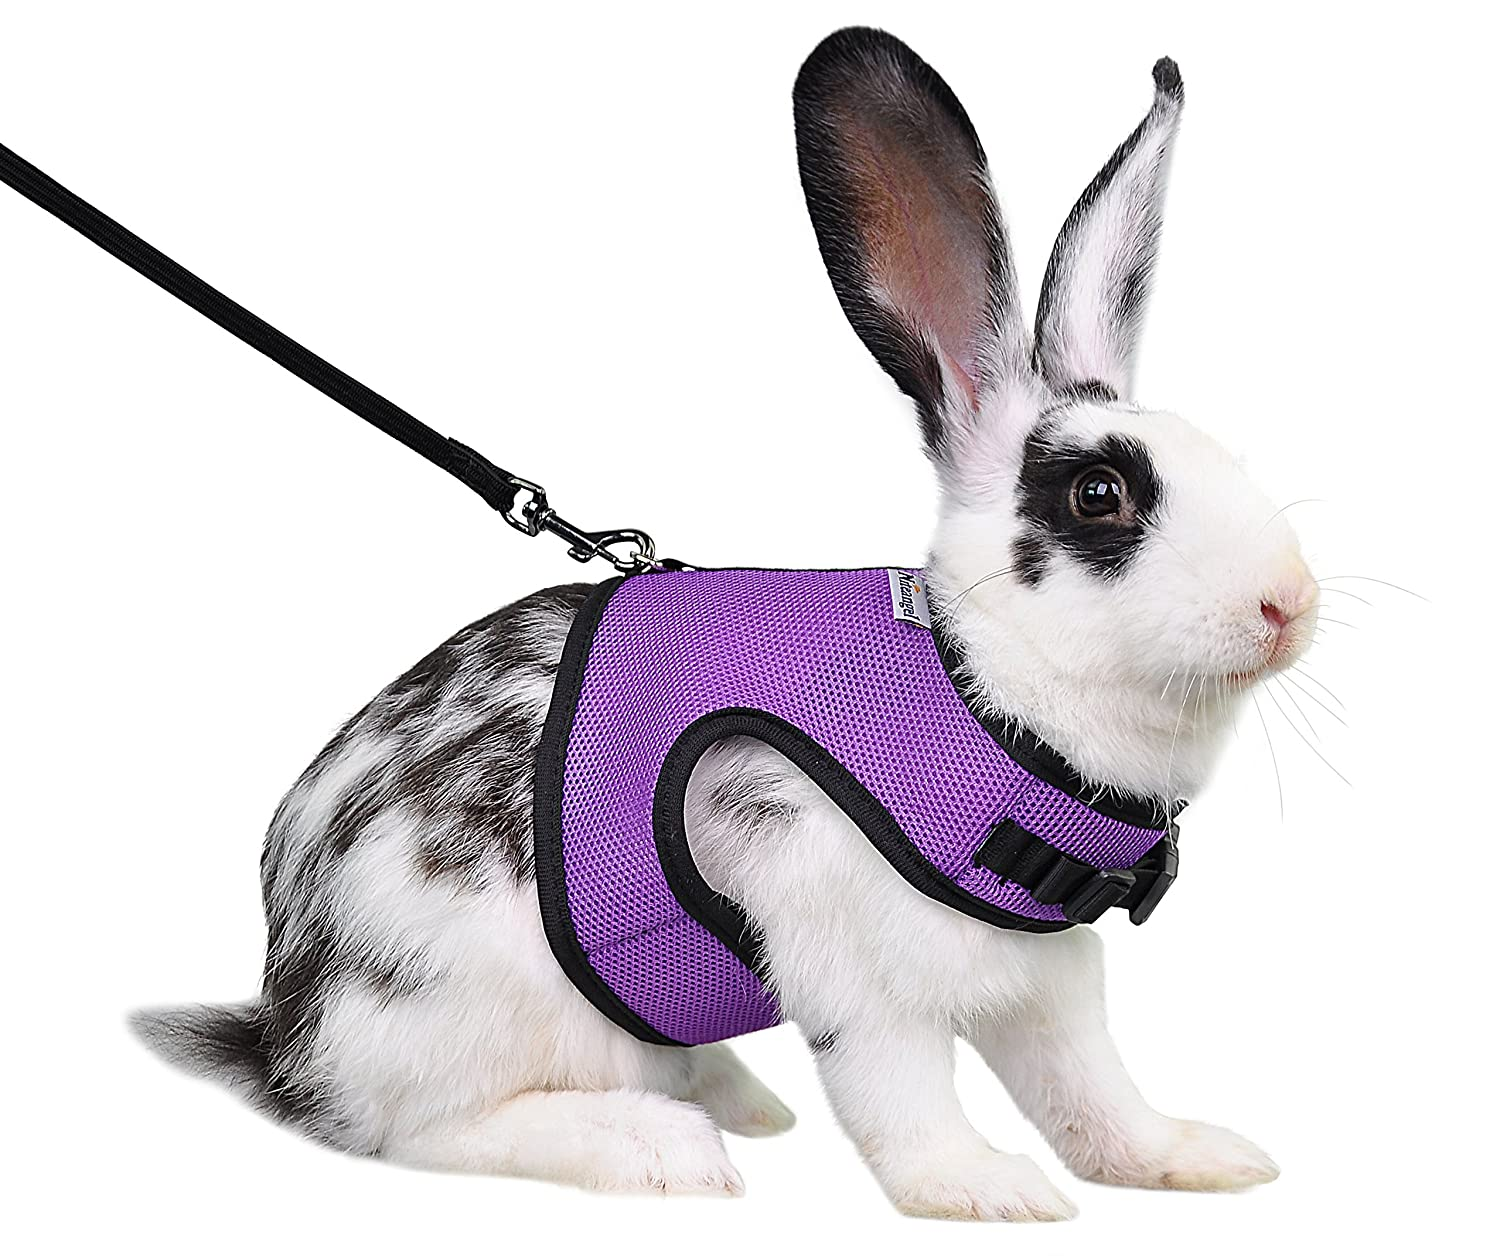 Pet supplies niteangel adjustable soft harness with elastic leash amazon  com animals chewing wires bunny chewing